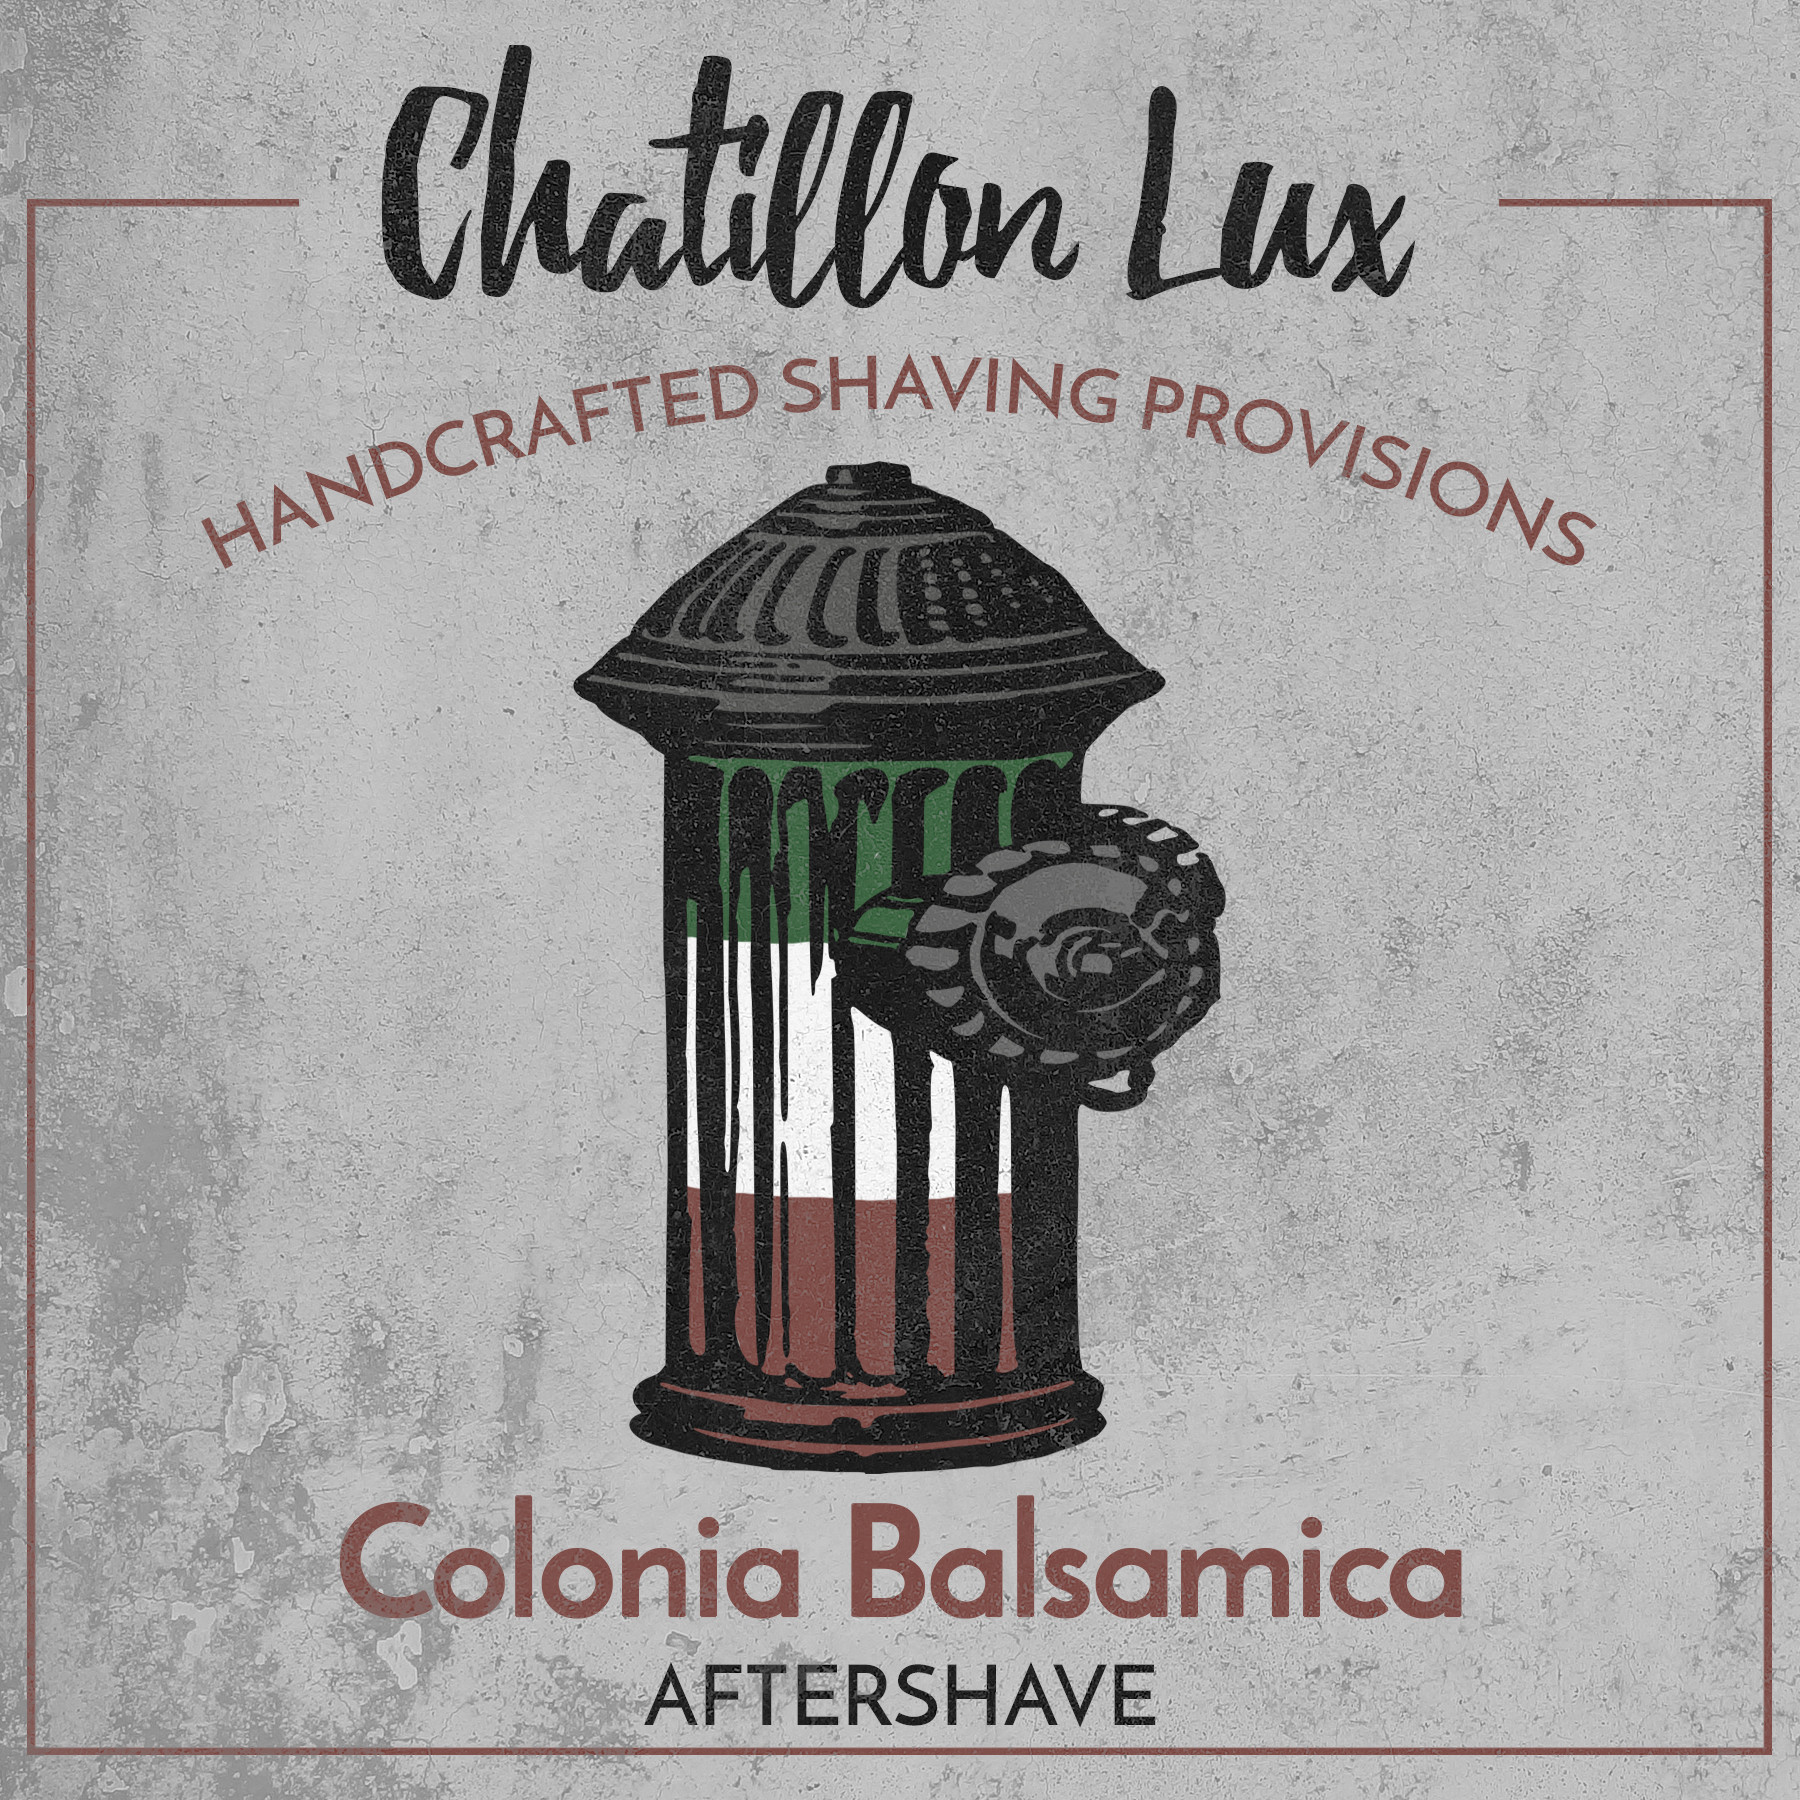 Chatillon Lux - Colonia Balsamica - Aftershave image